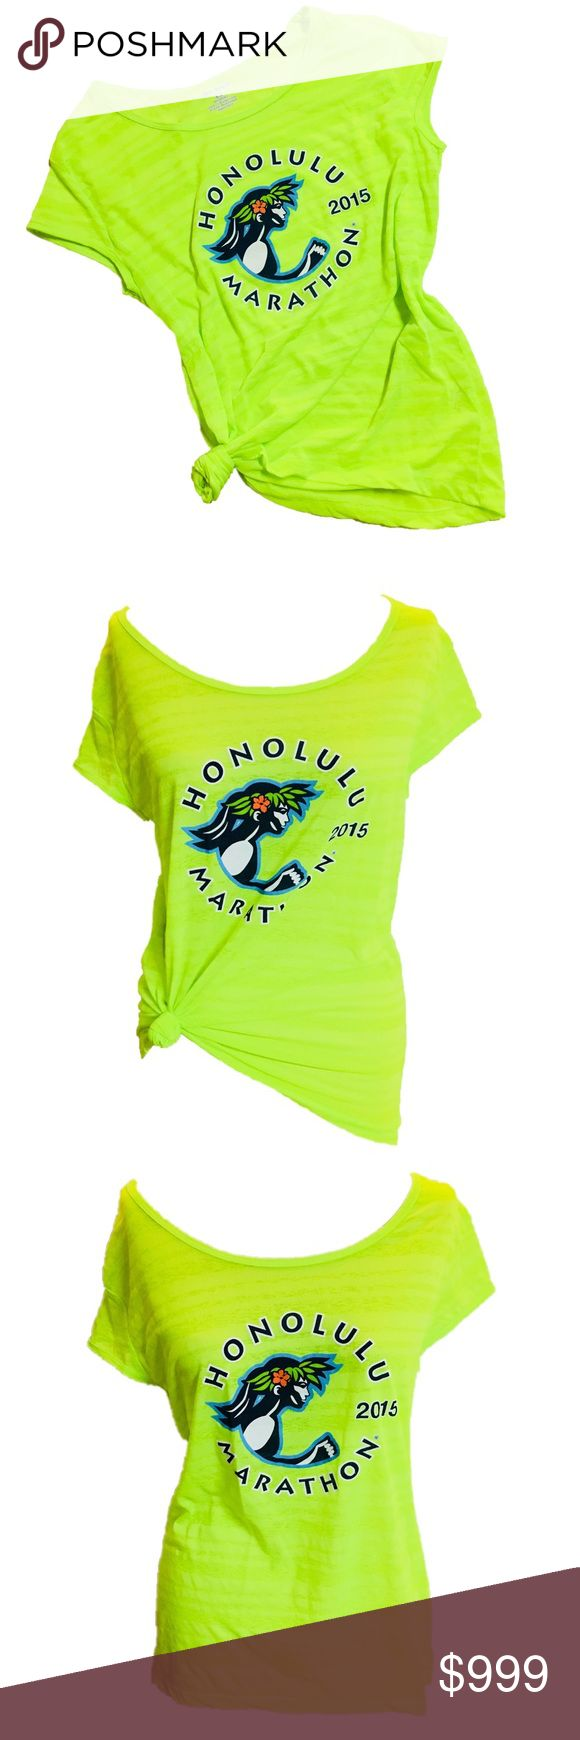 <<New~ Honolulu Cool Breeze Running T-Shirt Tee HONOLULU Sports Running 2015  Cool Breeze Women's Tee Top  CONDITION: New with tags COLOR: Neon green  PRODUCT DETAILS:   Layer over a tank top or sports bra for that go to workout look. Great for fitness, working out, Zumba, running, etc..  Lightweight - Great for running & exercise Sheer striped design 100% Polyester 2015 Honolulu Mara-thon Design Tops Tees - Short Sleeve